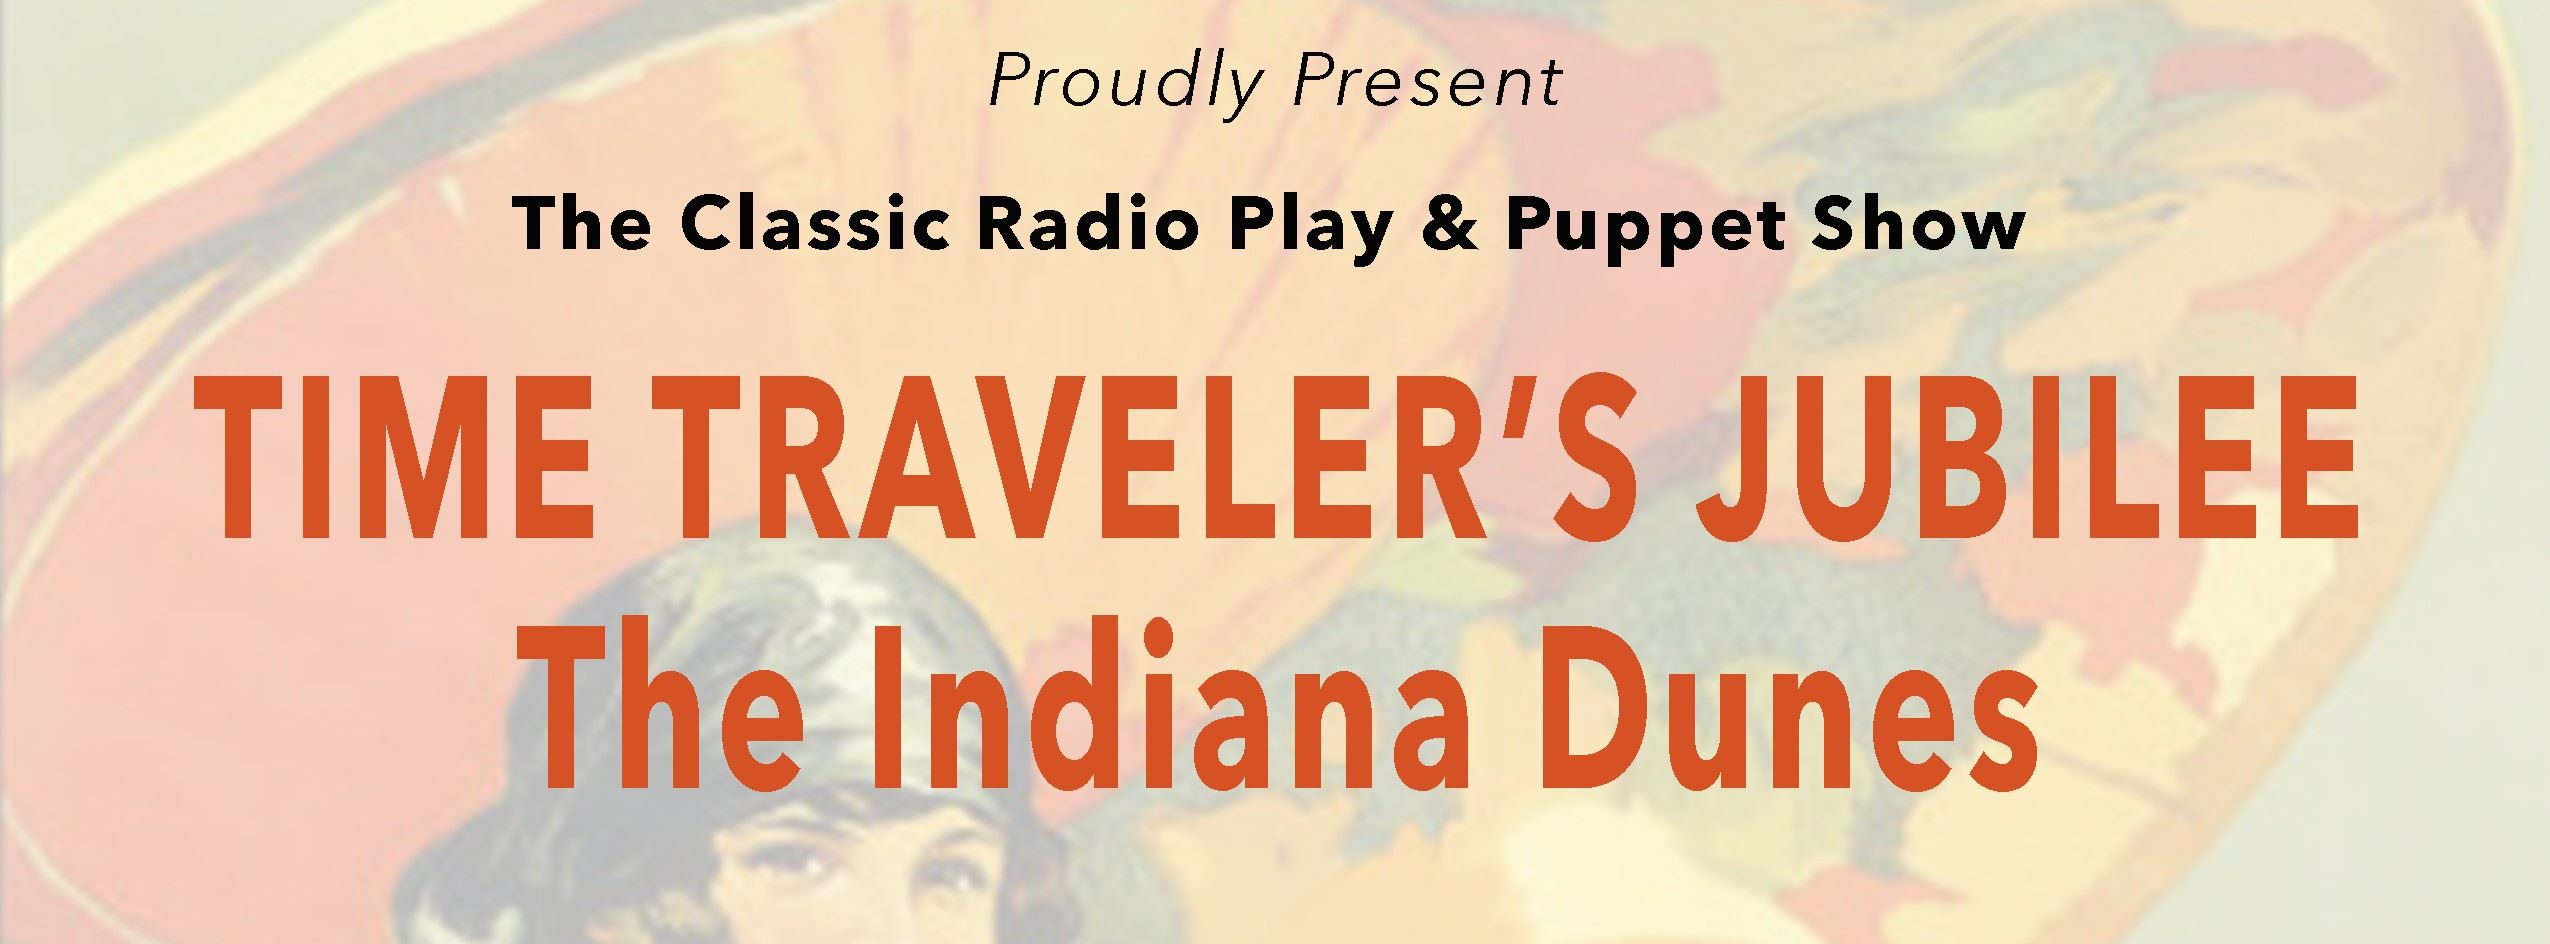 Time Traveler&#39s Jubilee - The Indiana Dunes Event Page Banner